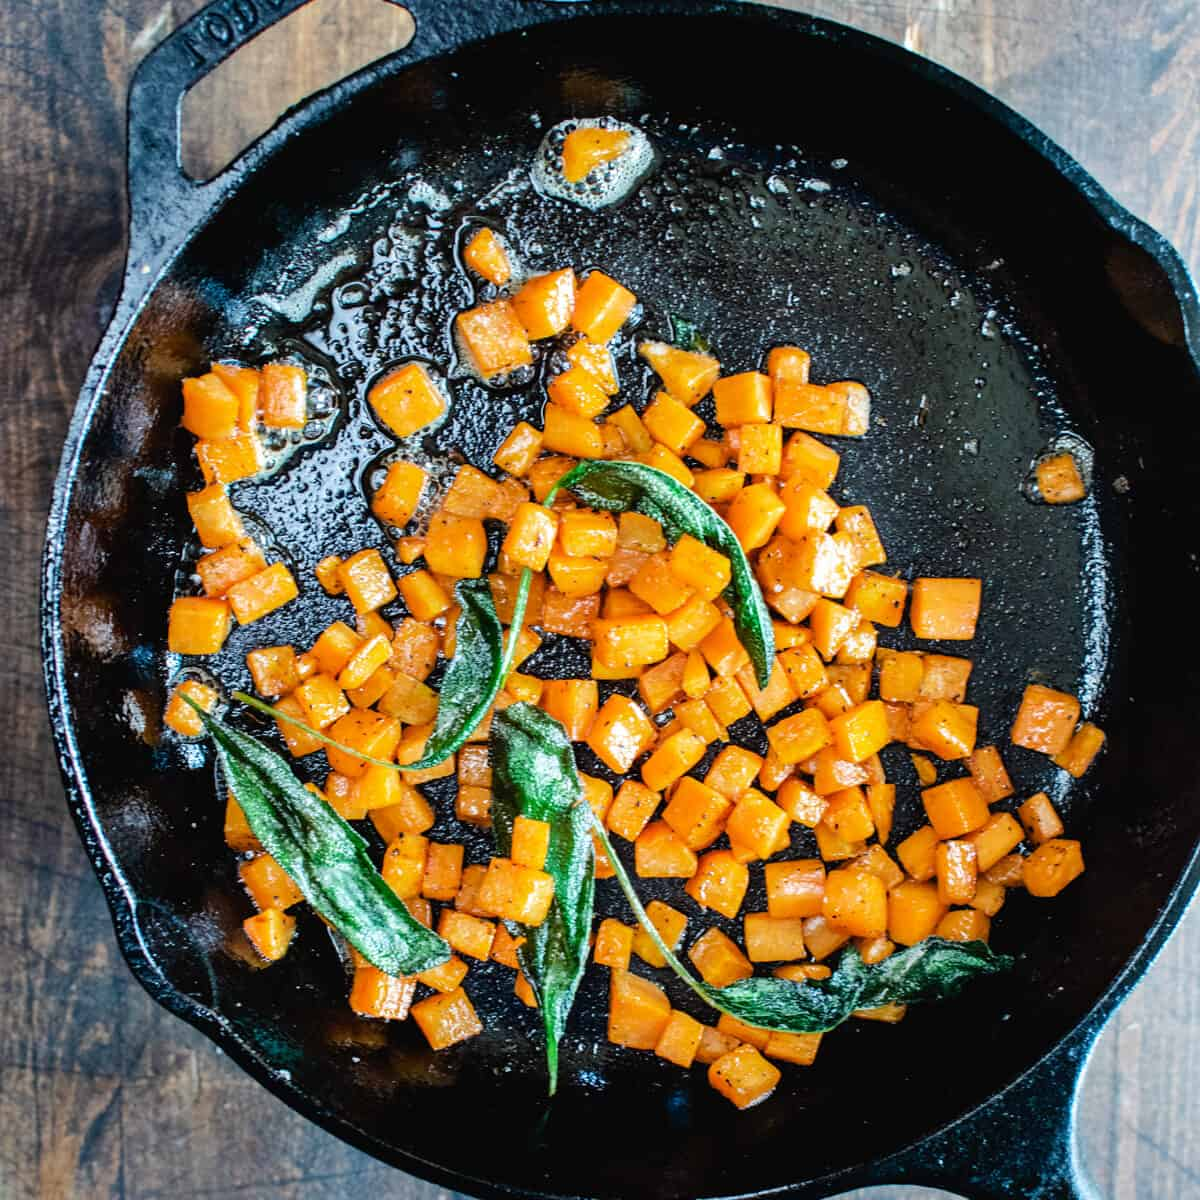 Diced sweet potato and sage being fried in a skillet